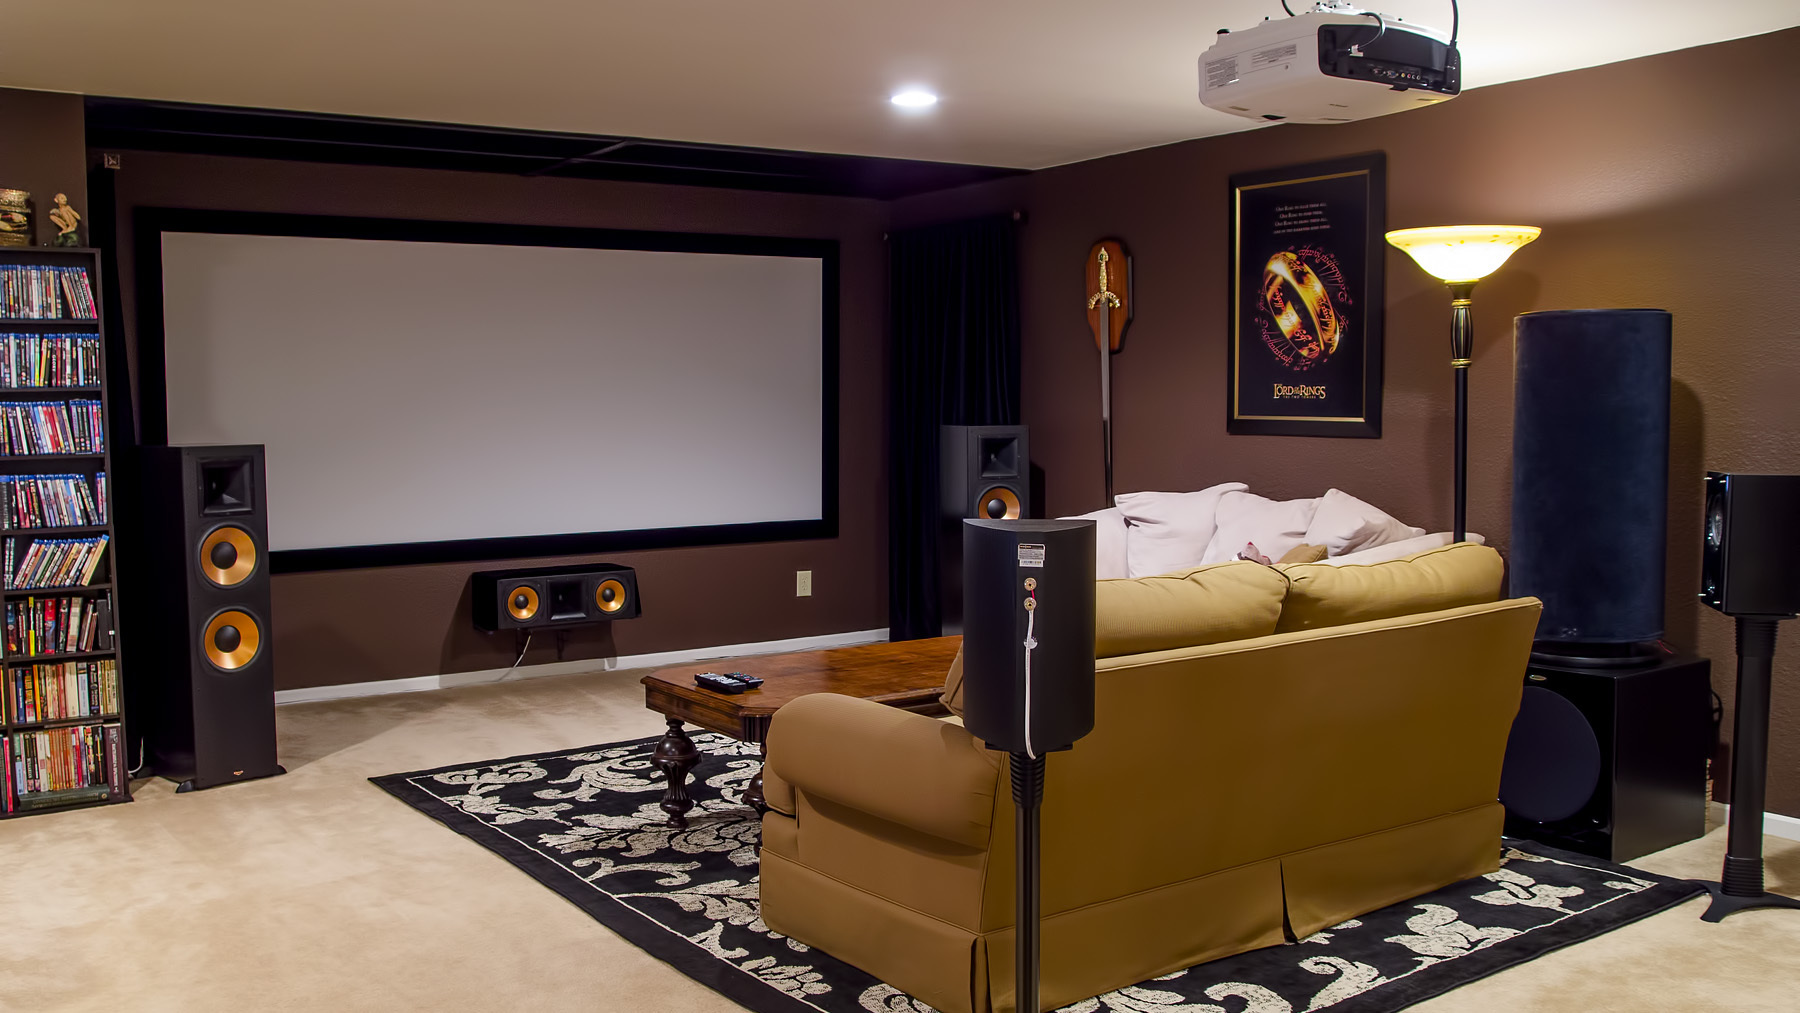 Edgar In Indy S Home Theater Gallery Home Theater As Of